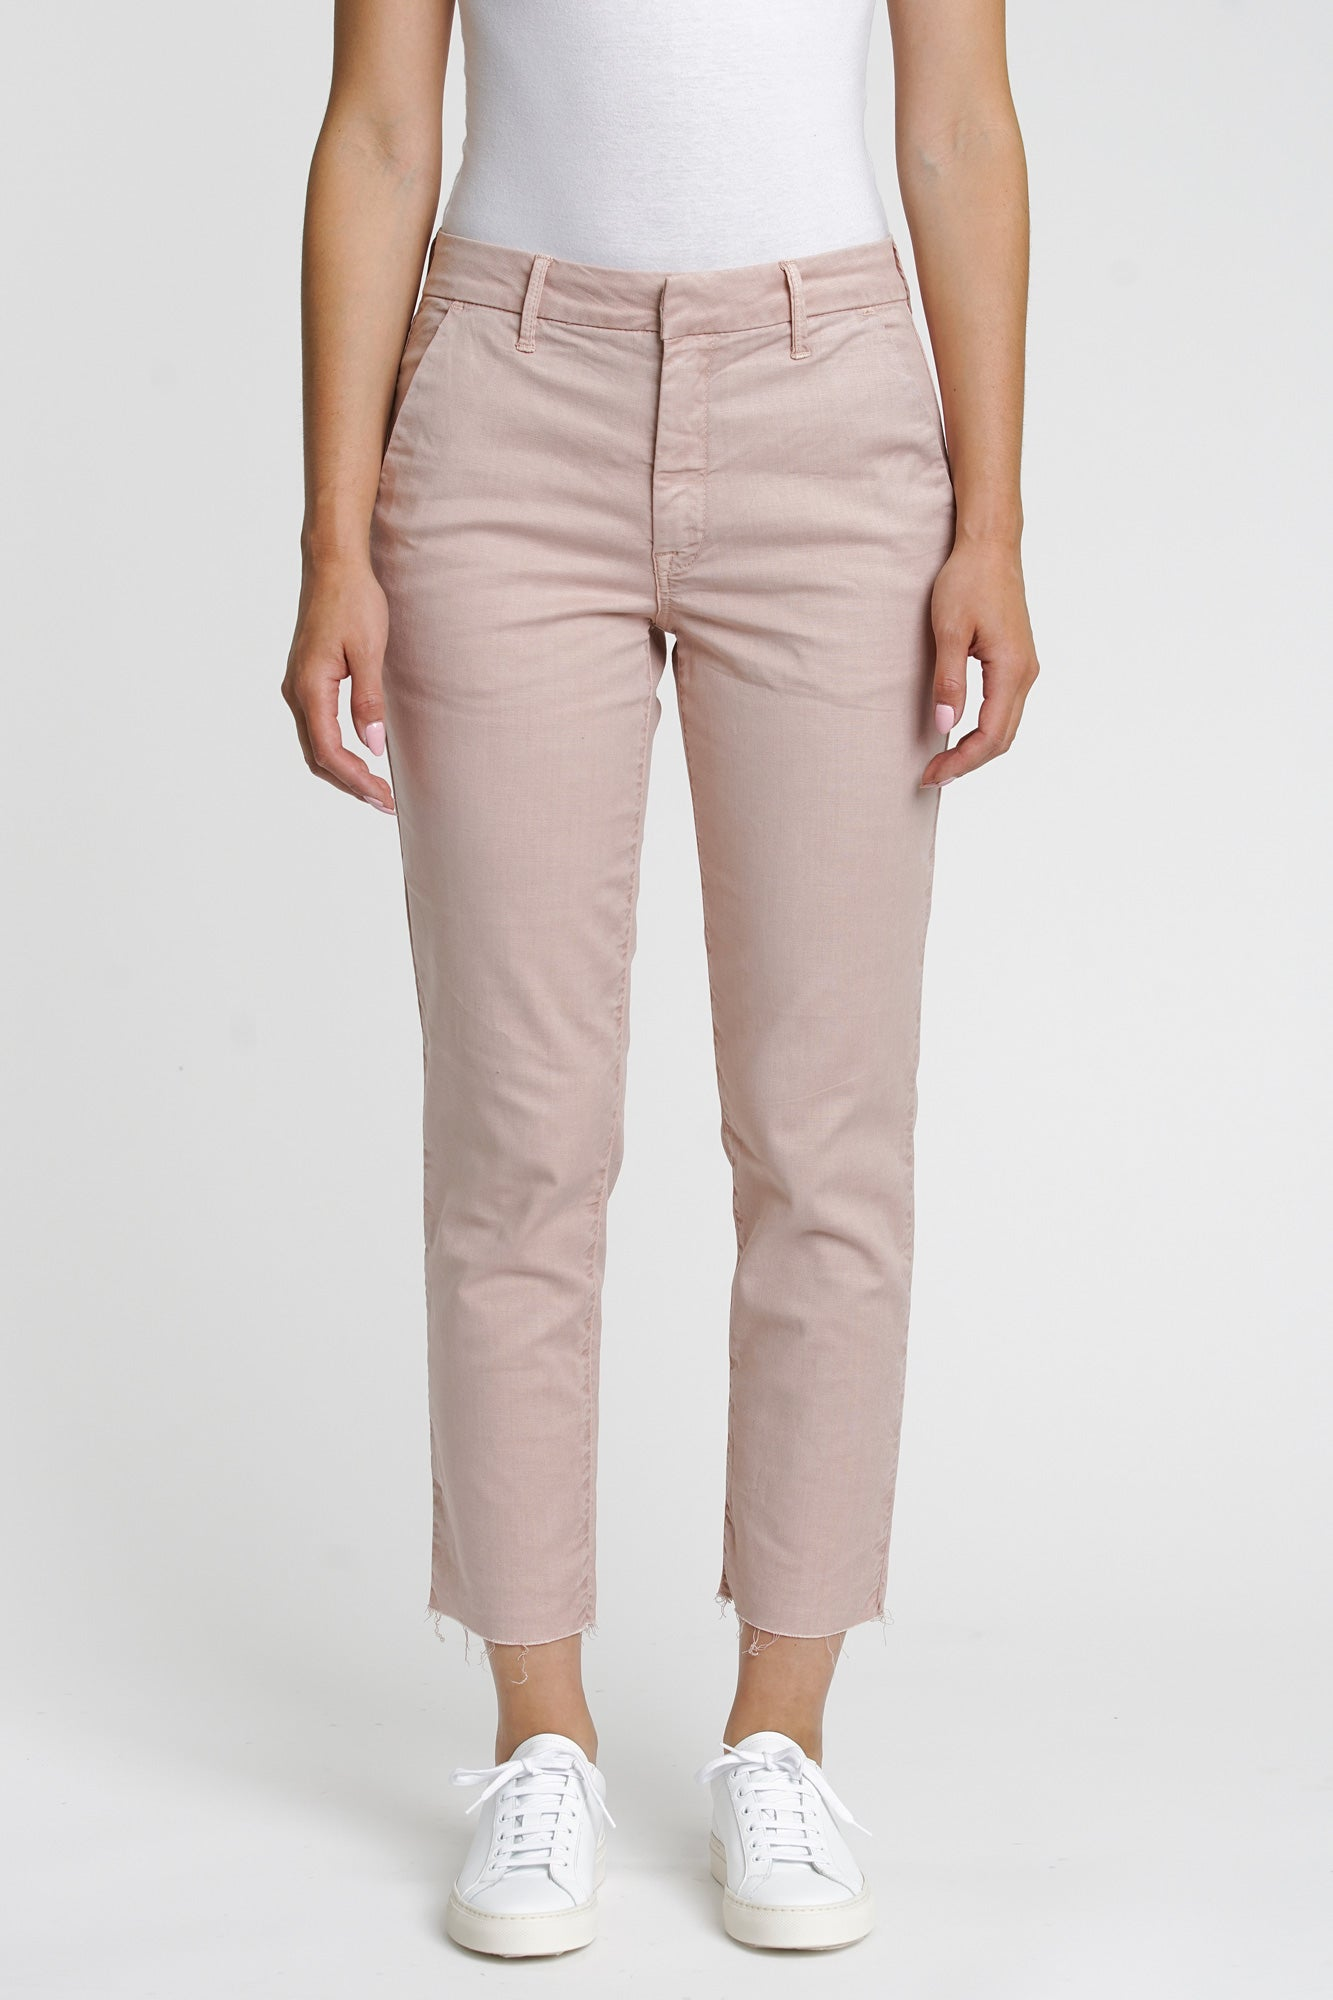 Luci Tencel Twill Chino - Vintage Pink